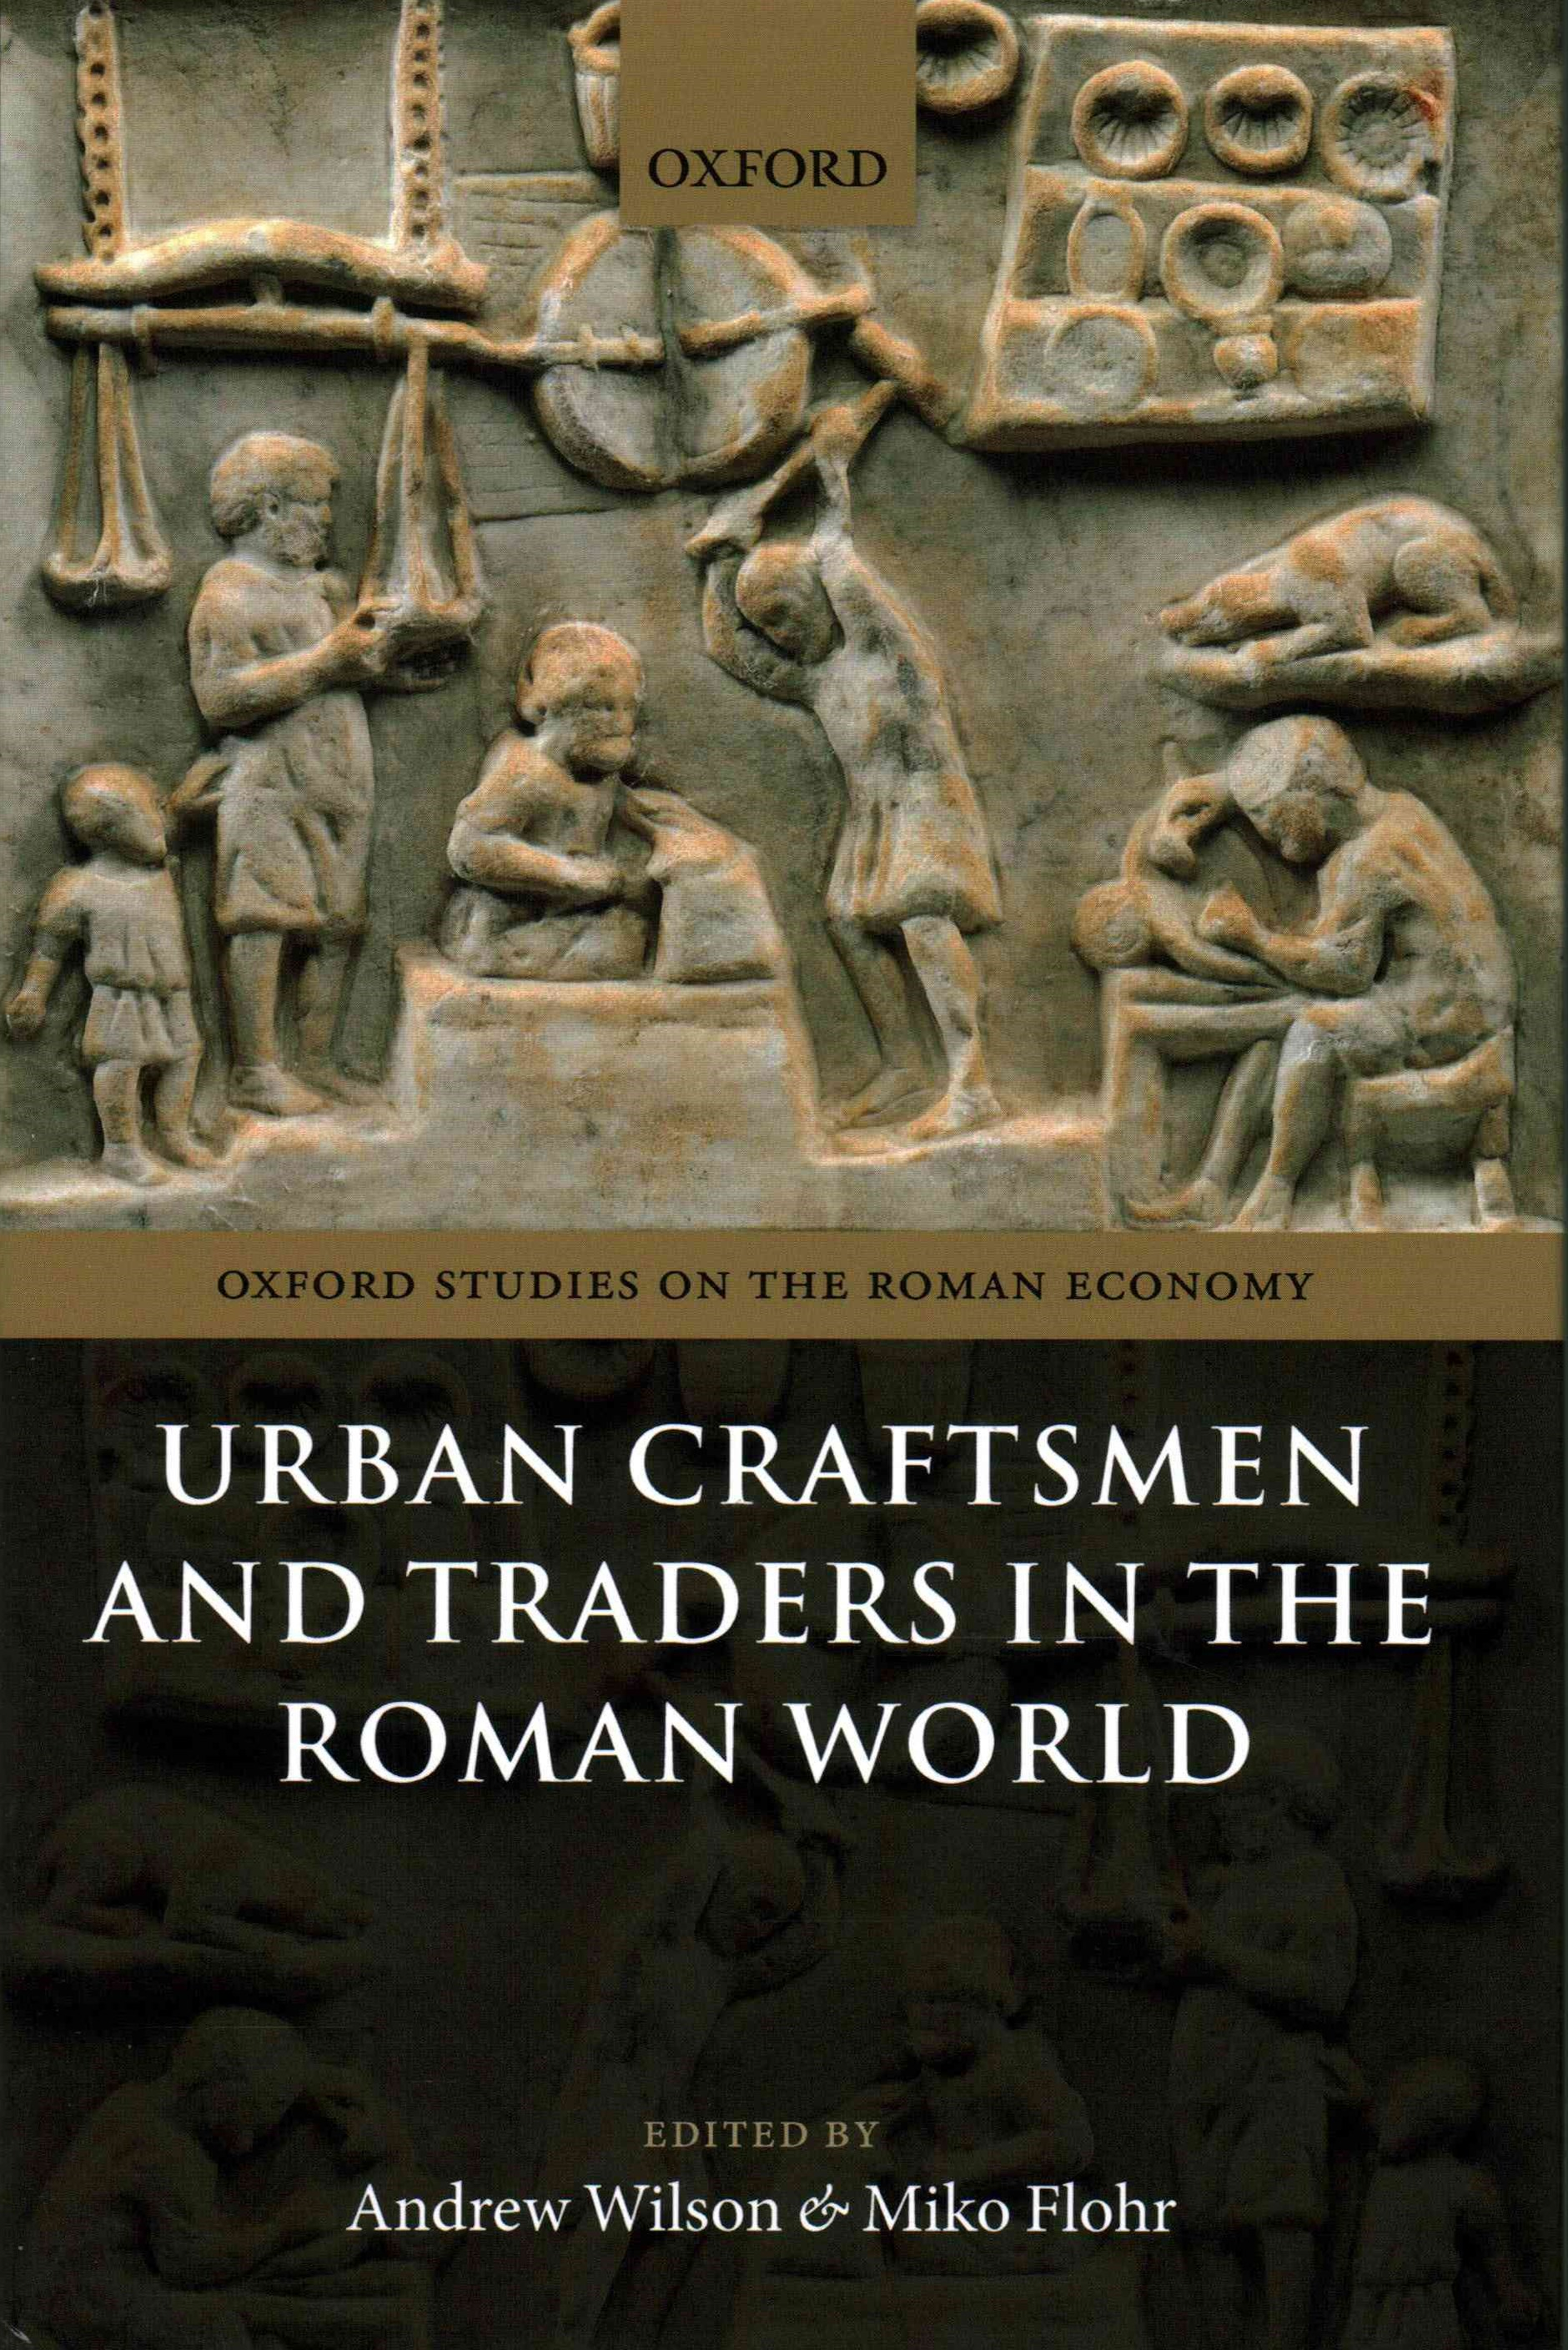 Urban Craftsmen and Traders in the Roman World